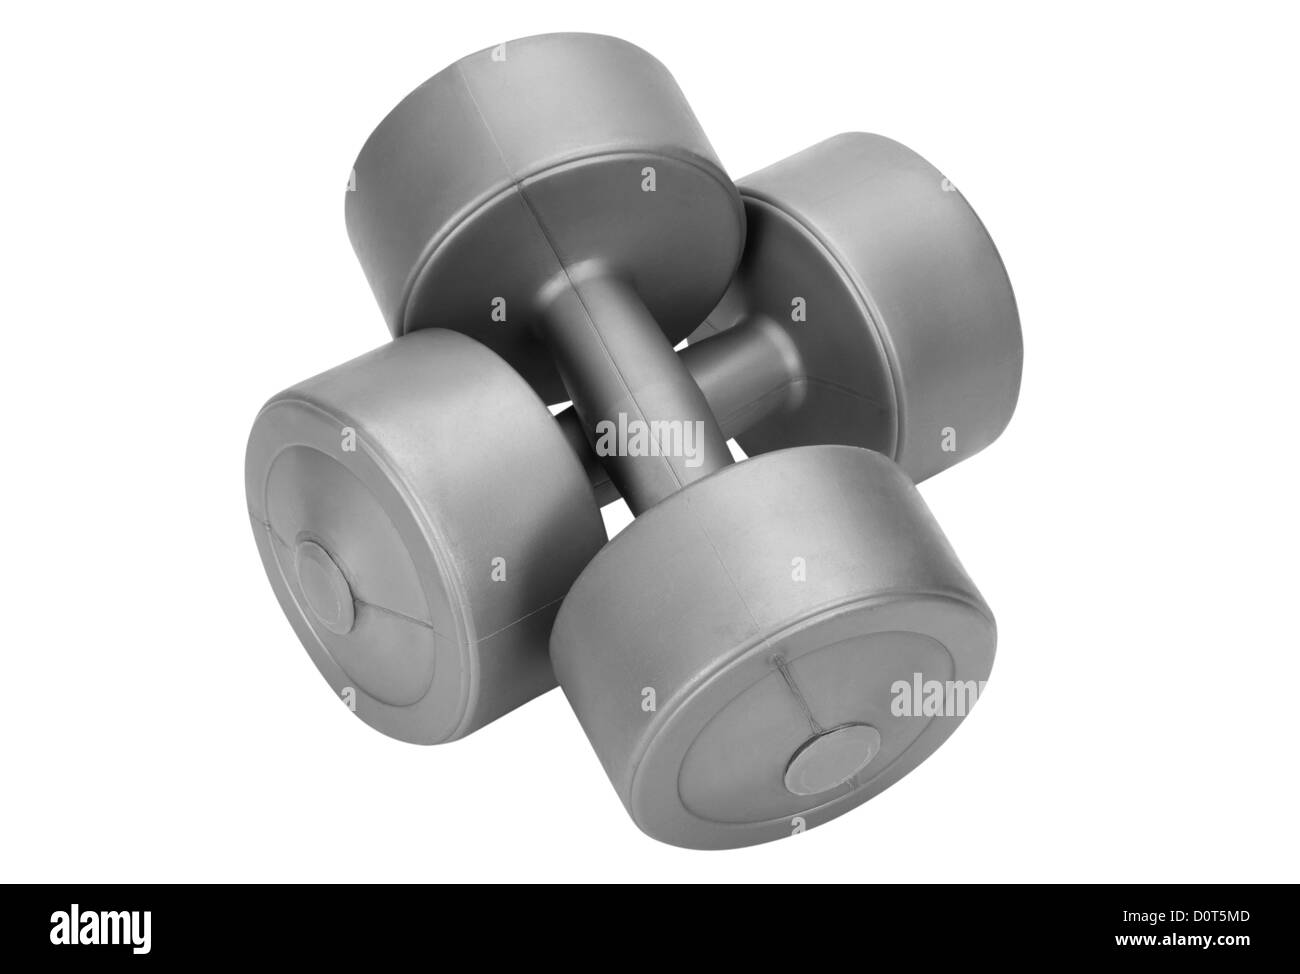 Close-up of dumbbells - Stock Image